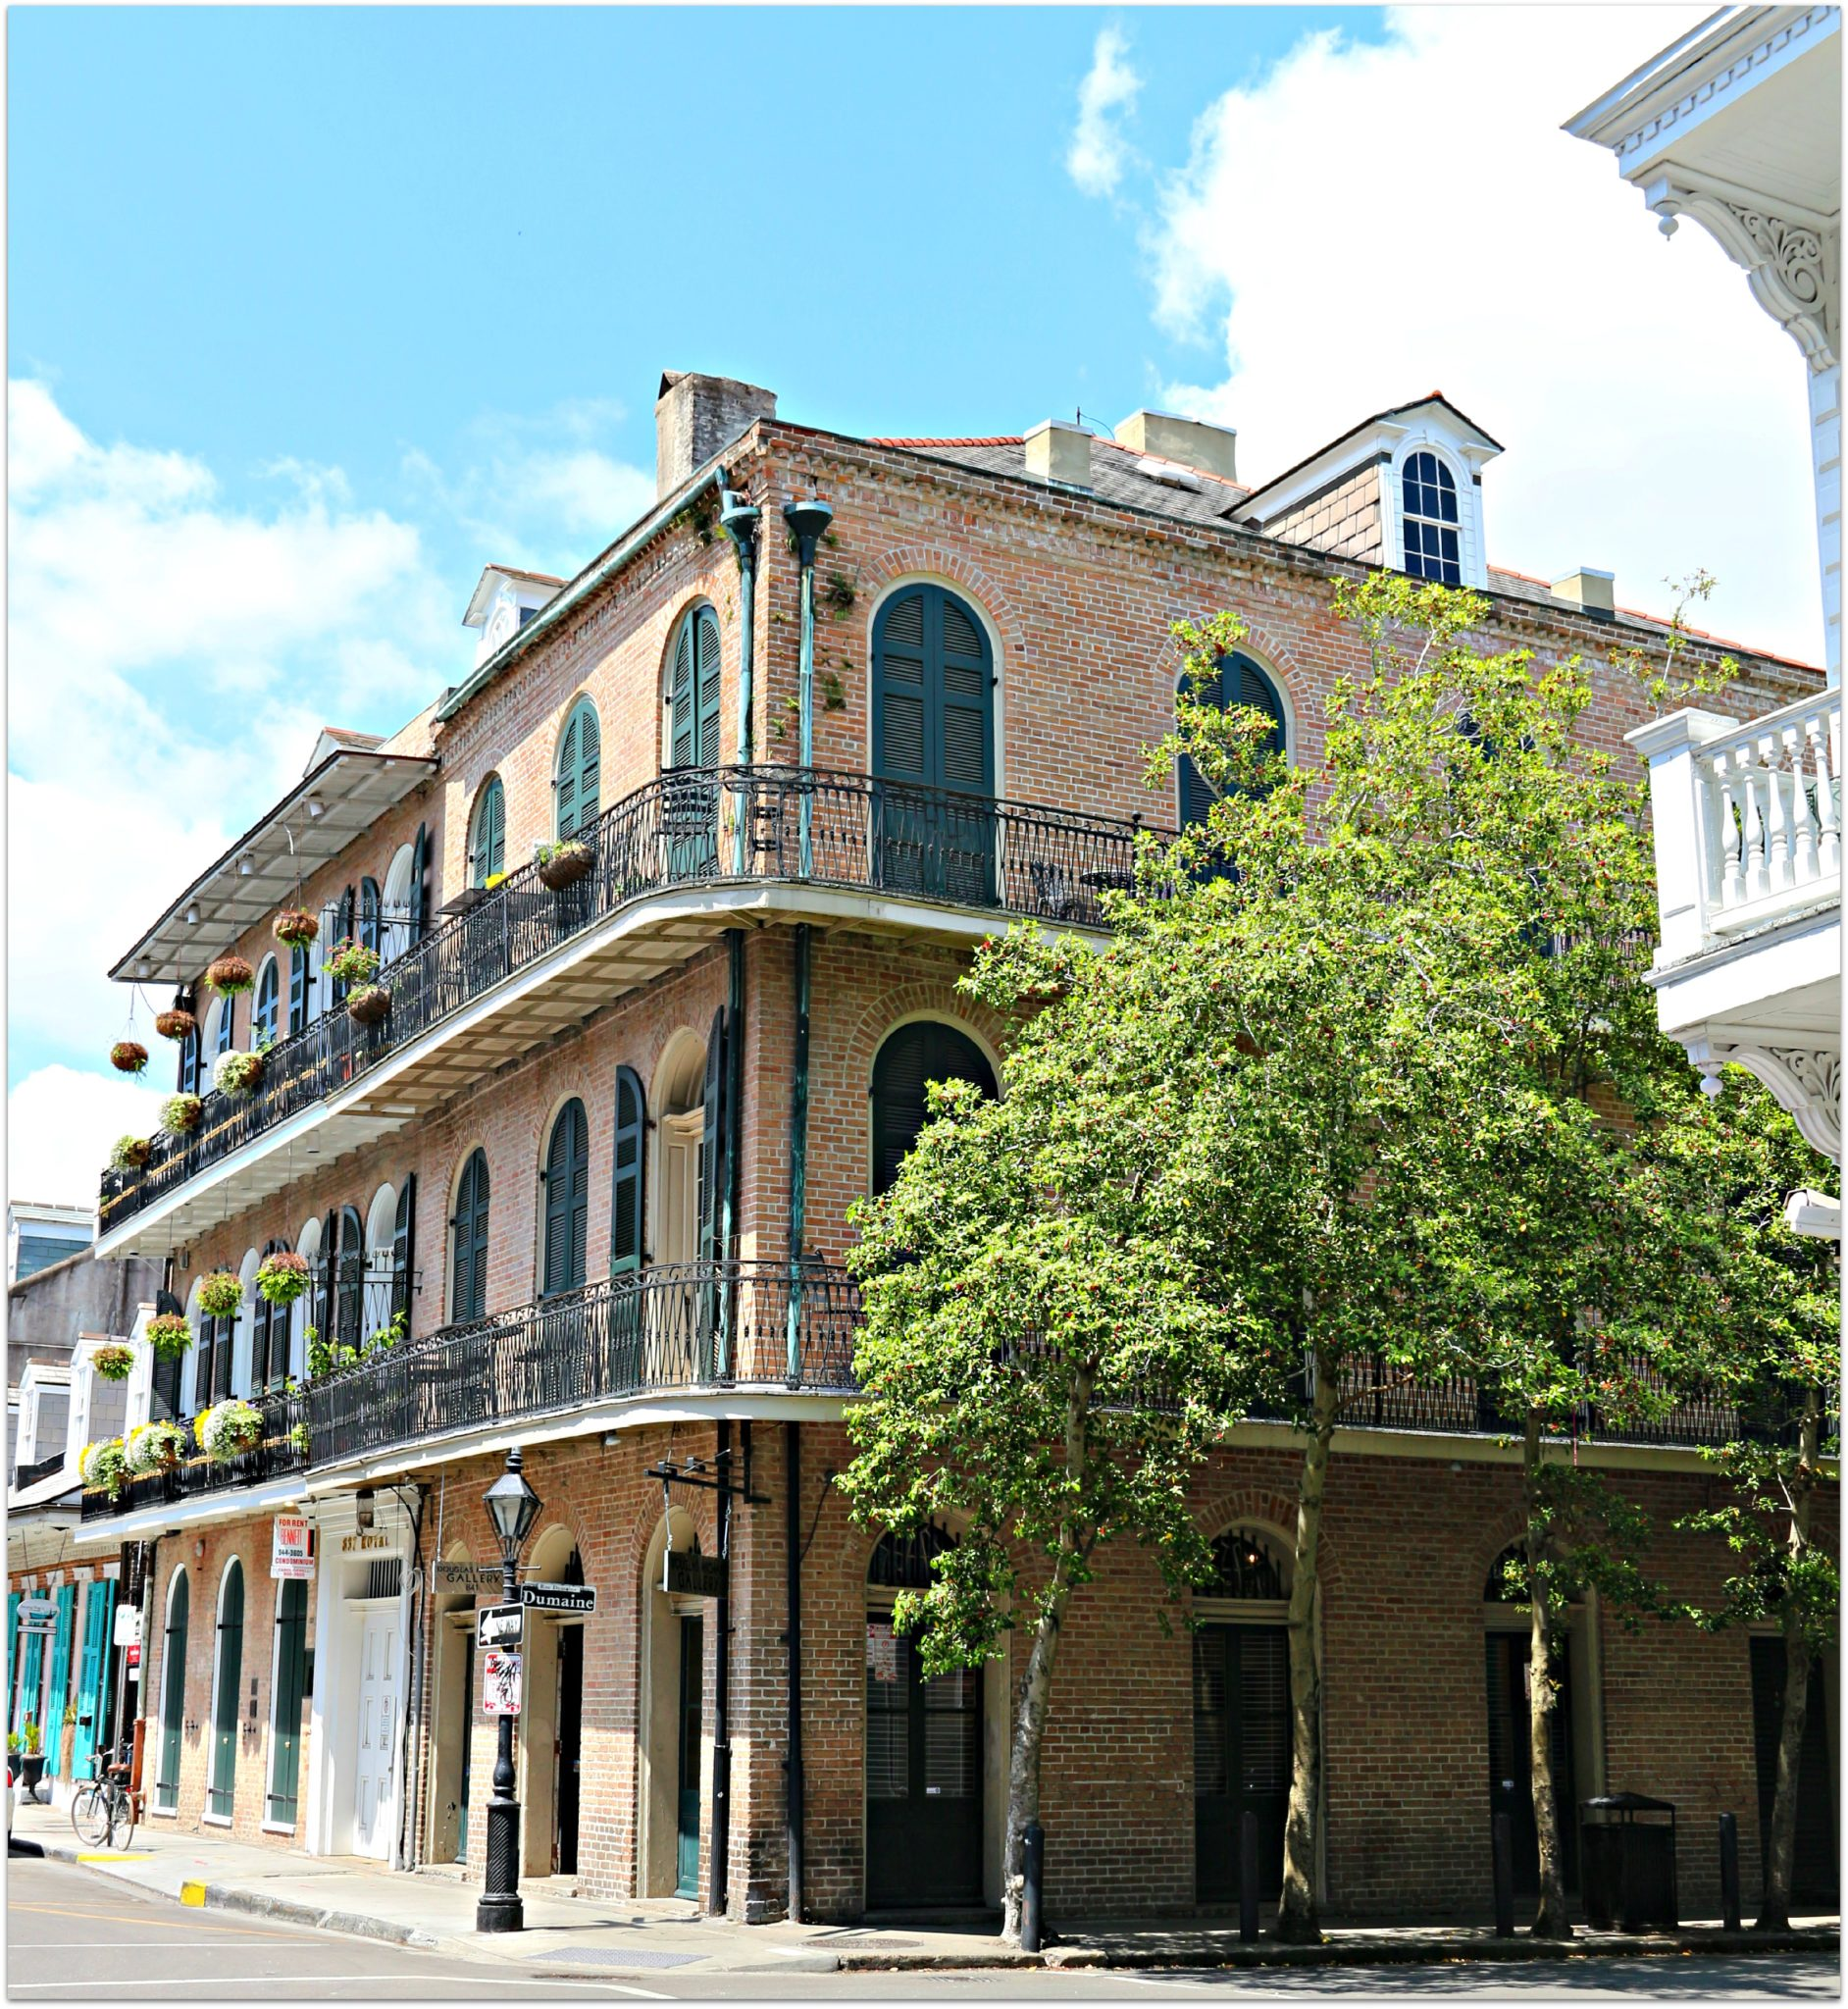 Condos on Royal Street in New Orleans